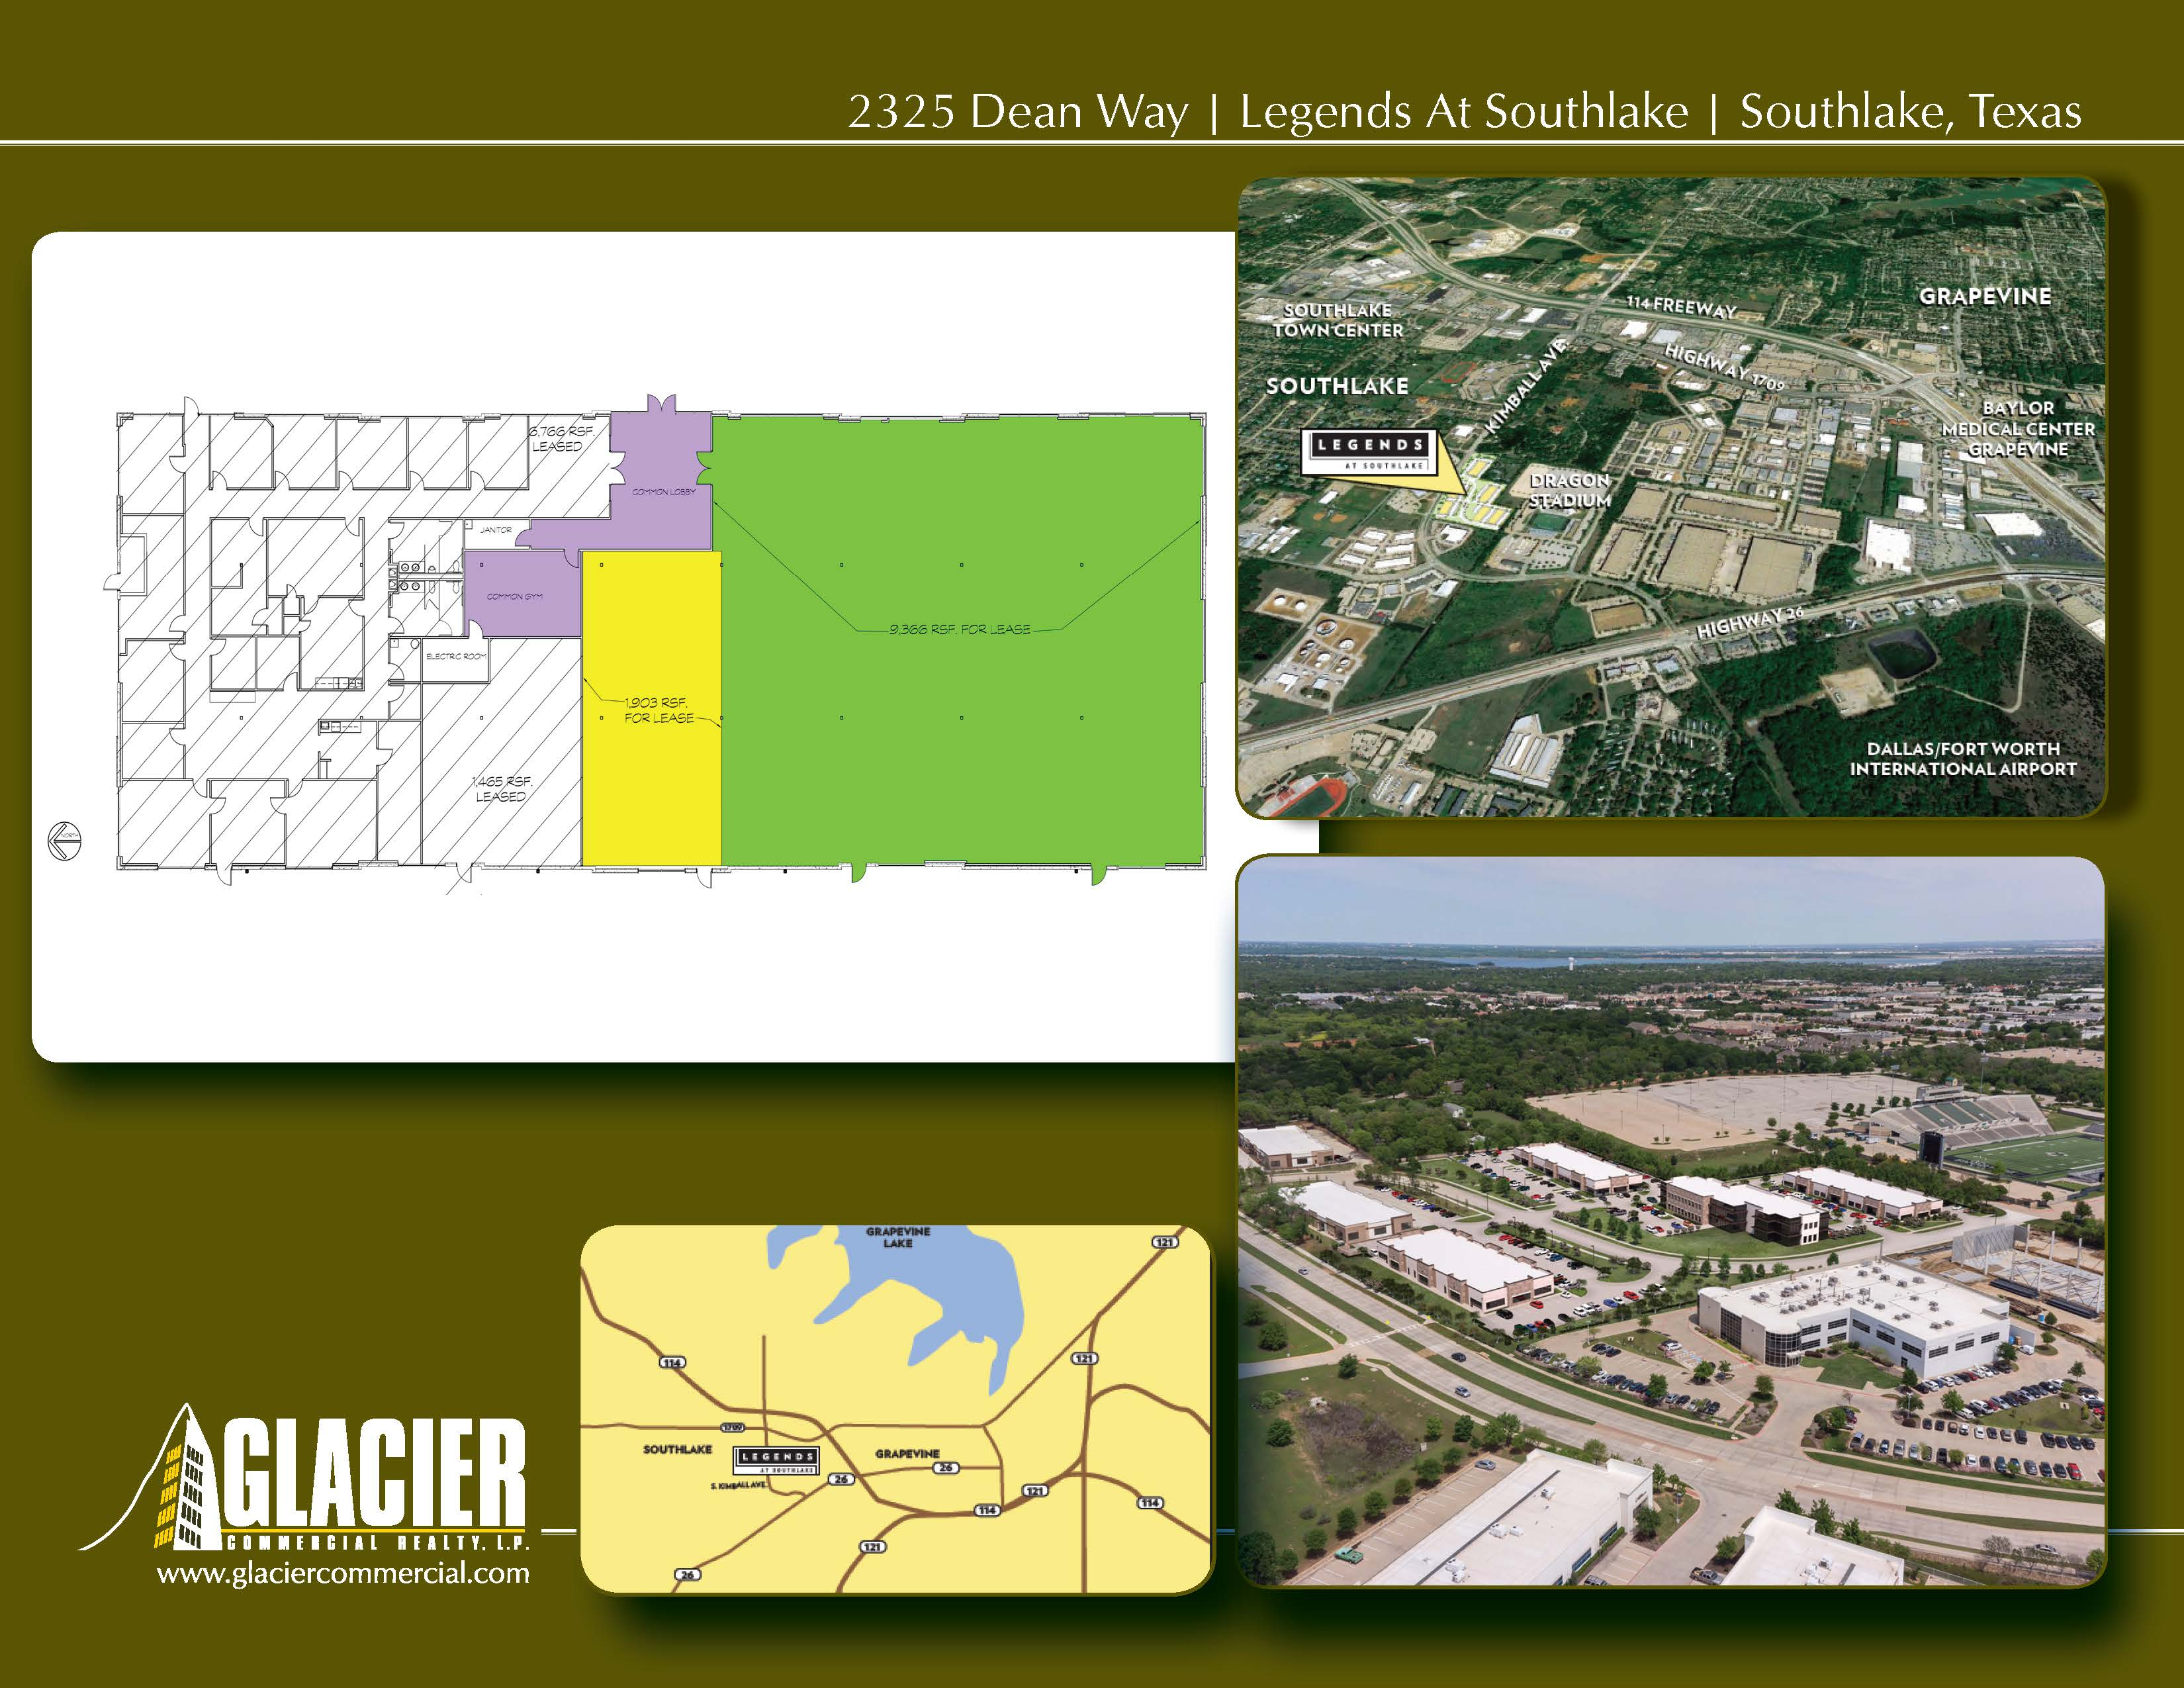 http://glaciercommercial.s3.amazonaws.com/production/photos/images/8487/original/2325_Dean_Way_Legends_At_Southlake_For_Lease_Flyer_Page_2.jpg?1437427724